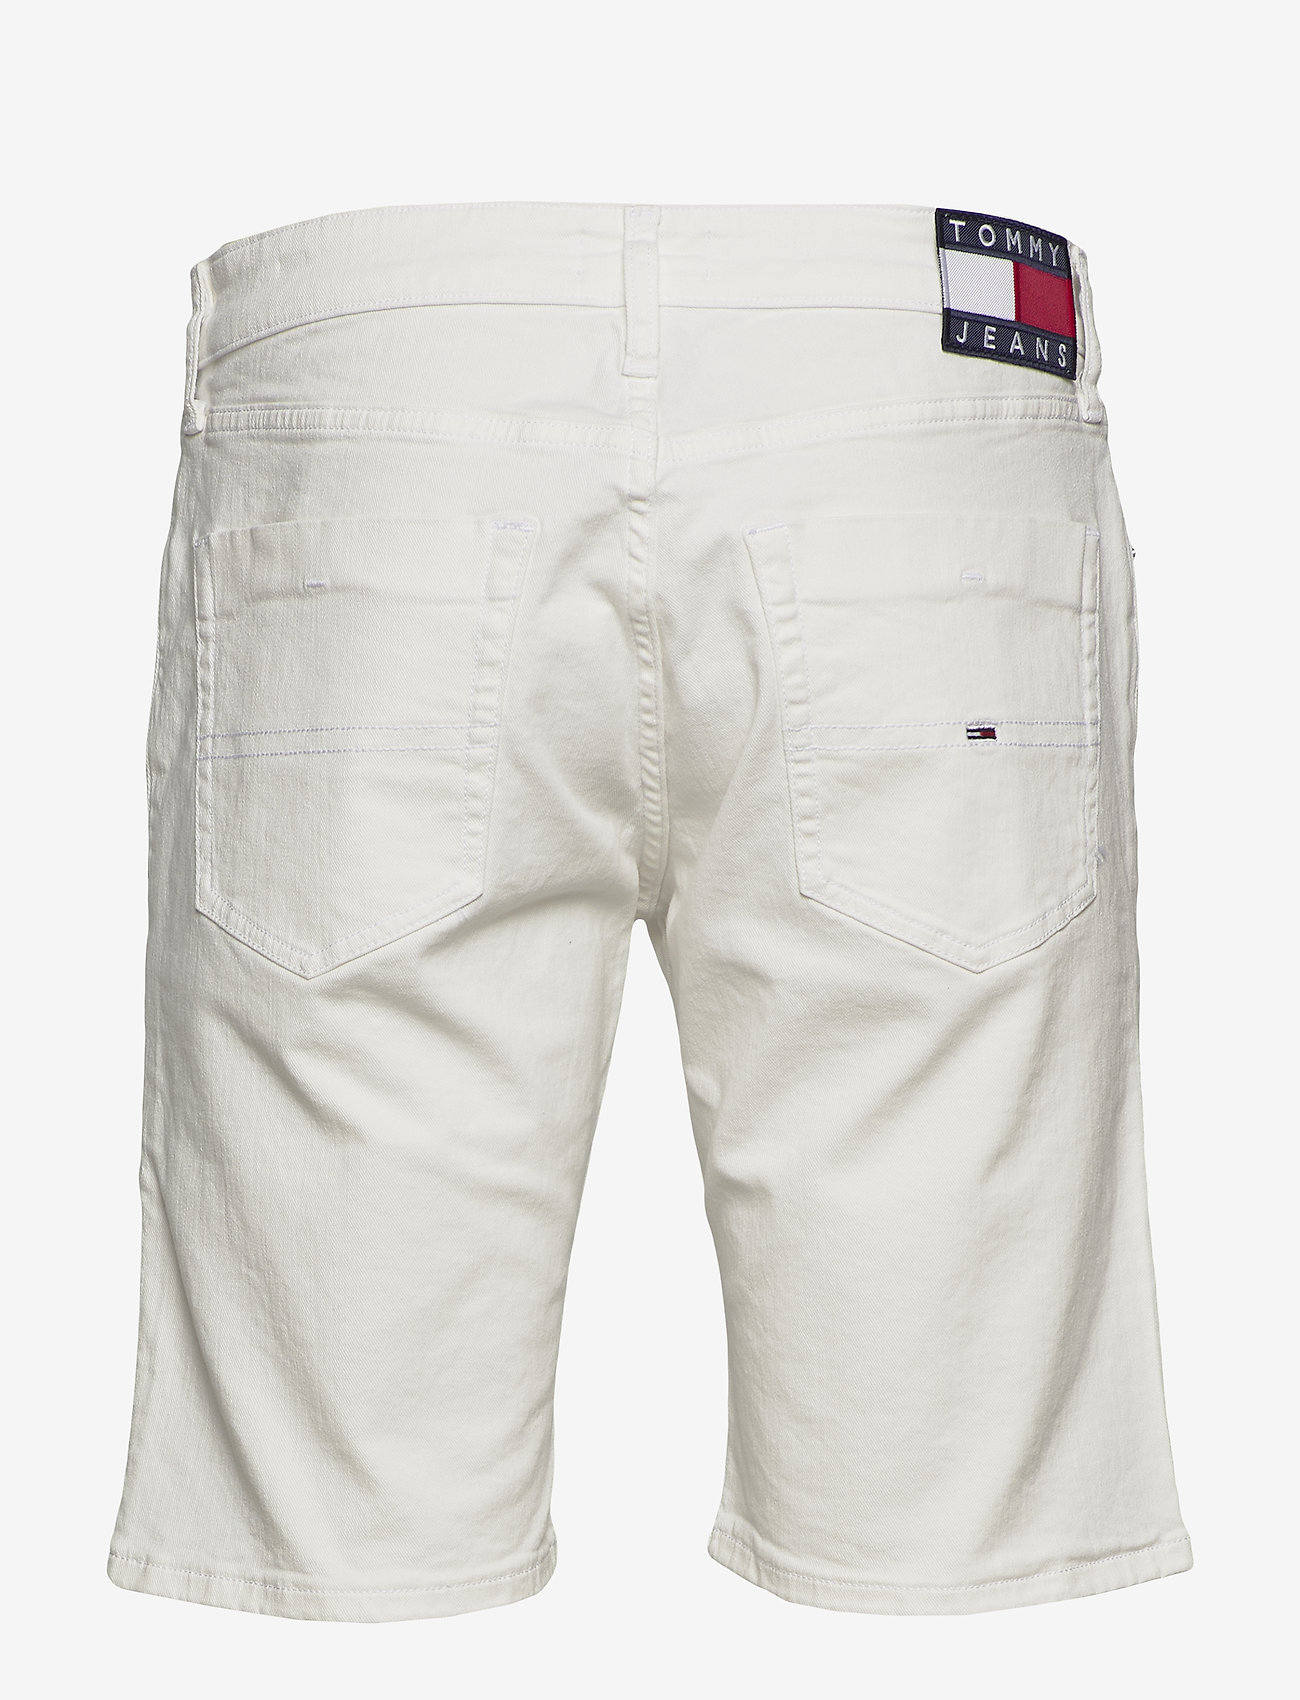 Tommy Jeans - SCANTON HERITAGE SHORT MRWH - denim shorts - mars white com - 1